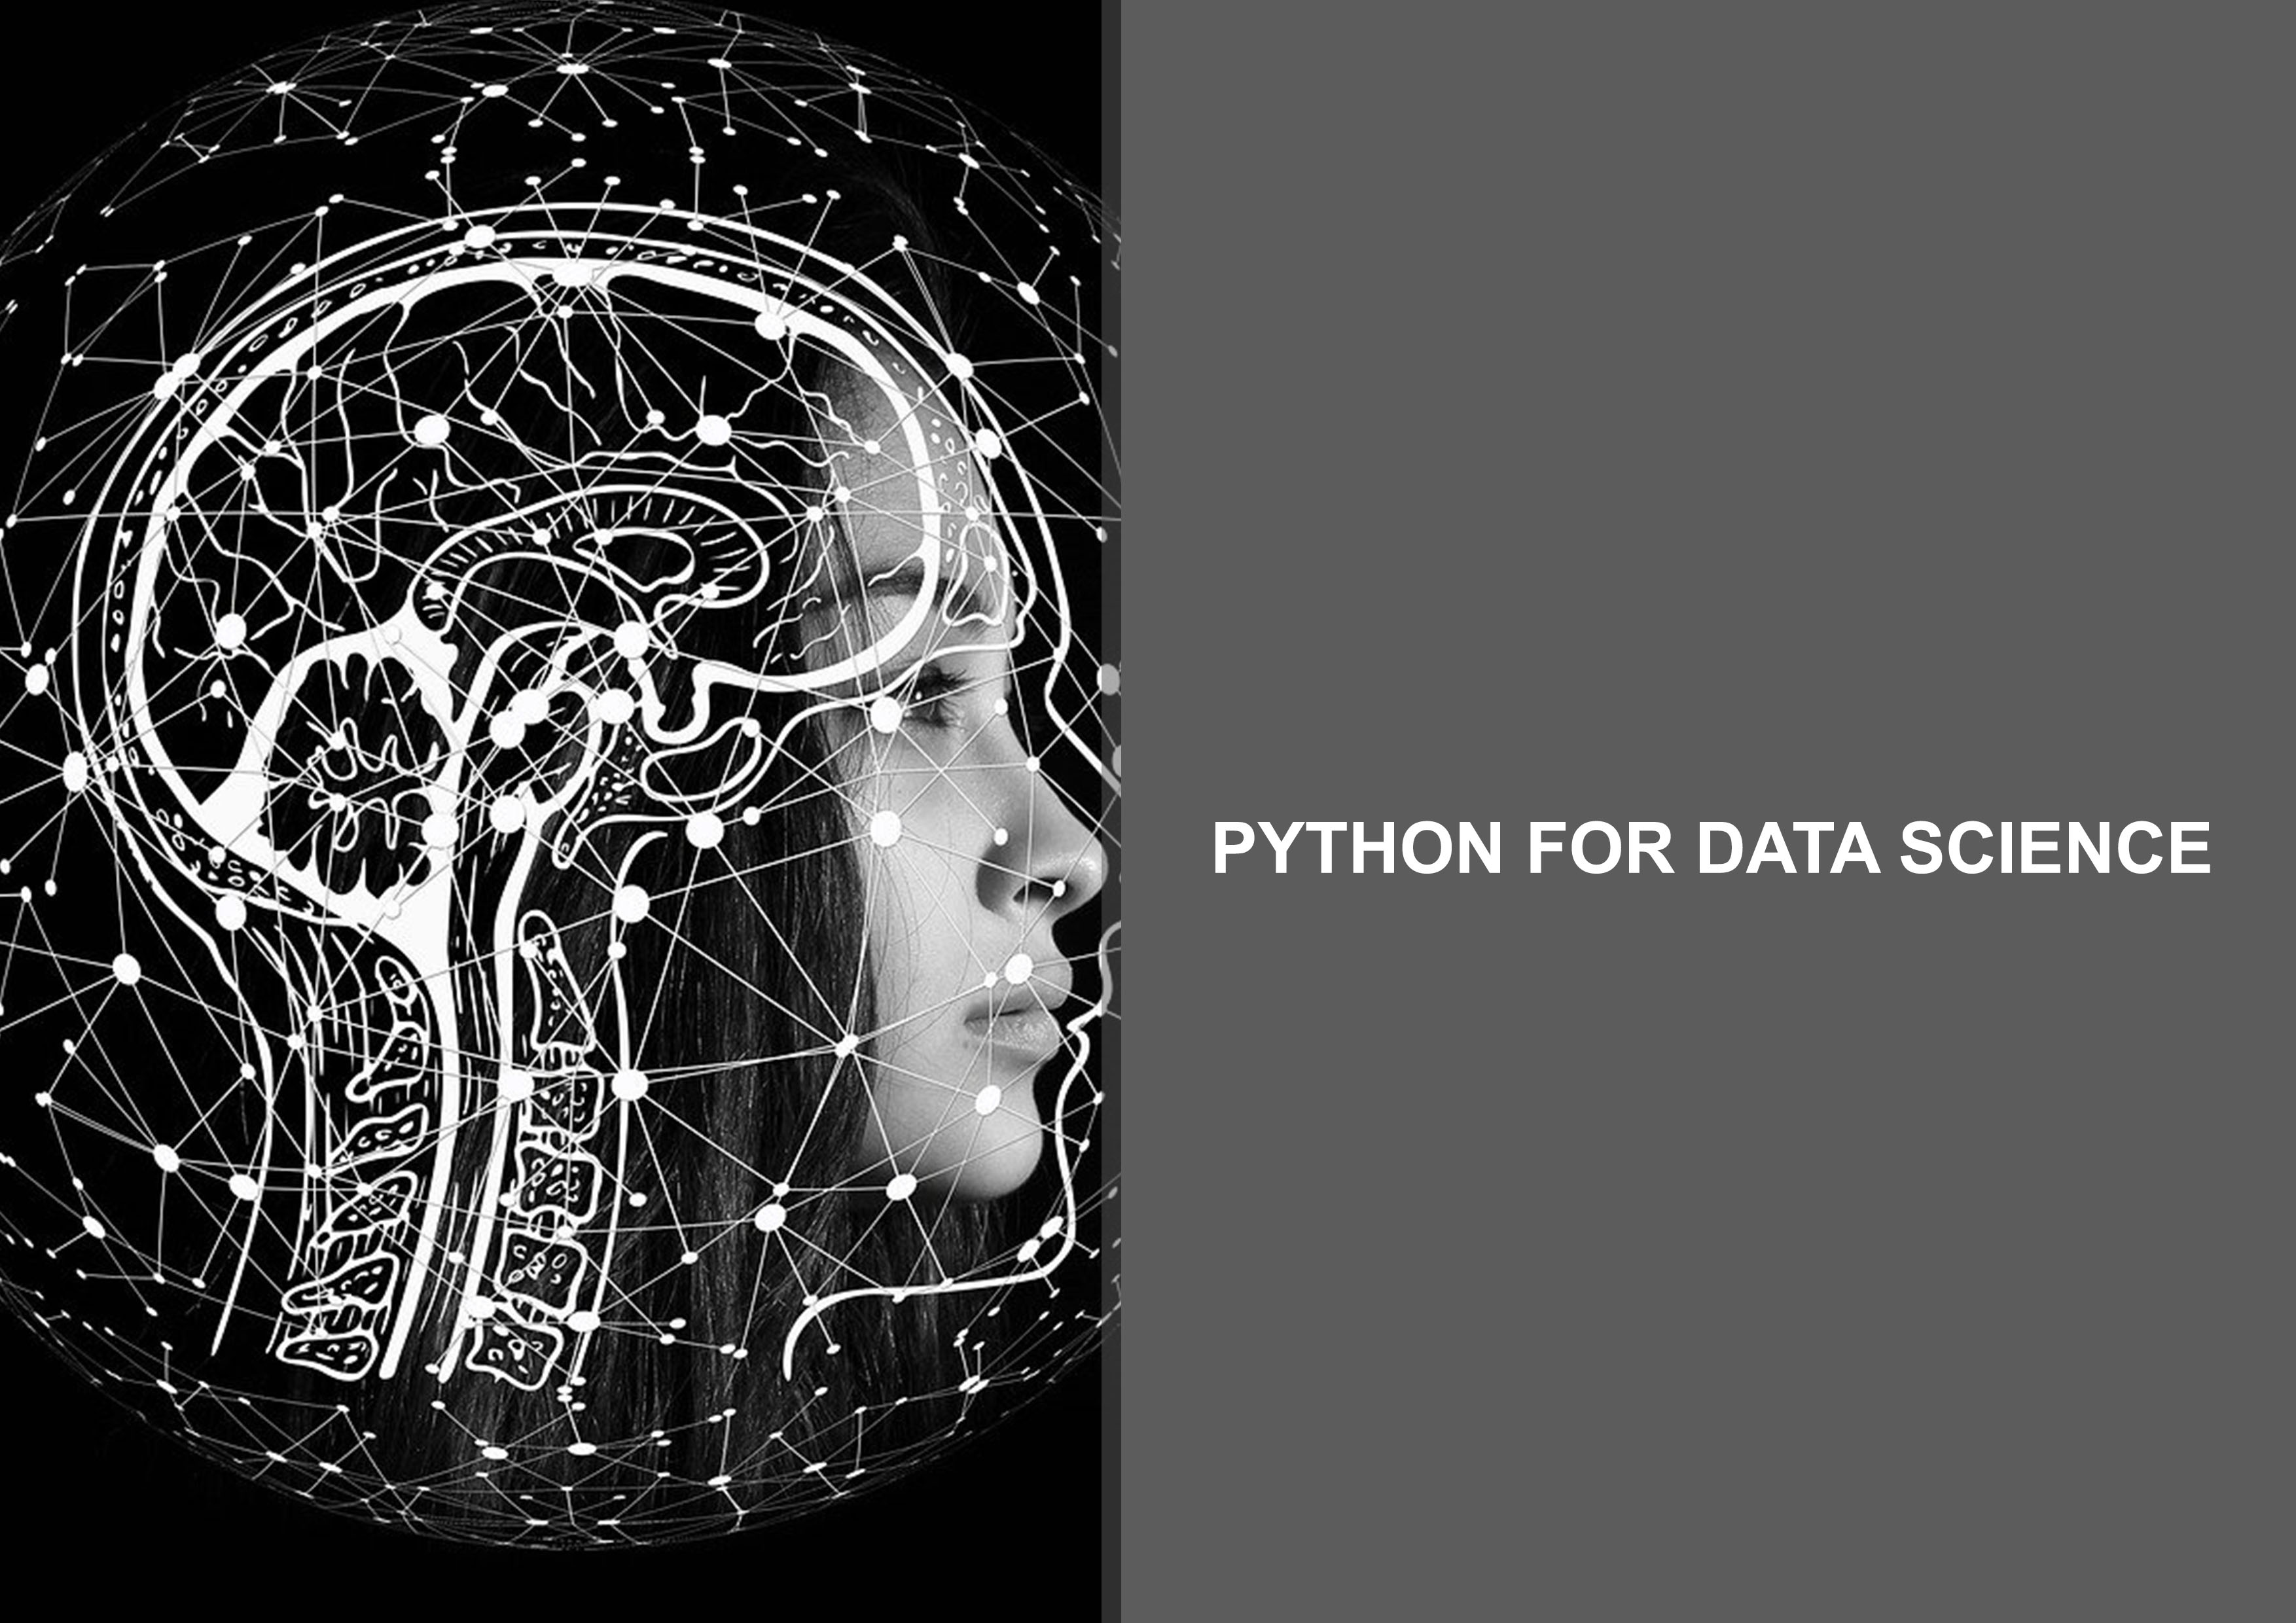 Python for Data Science